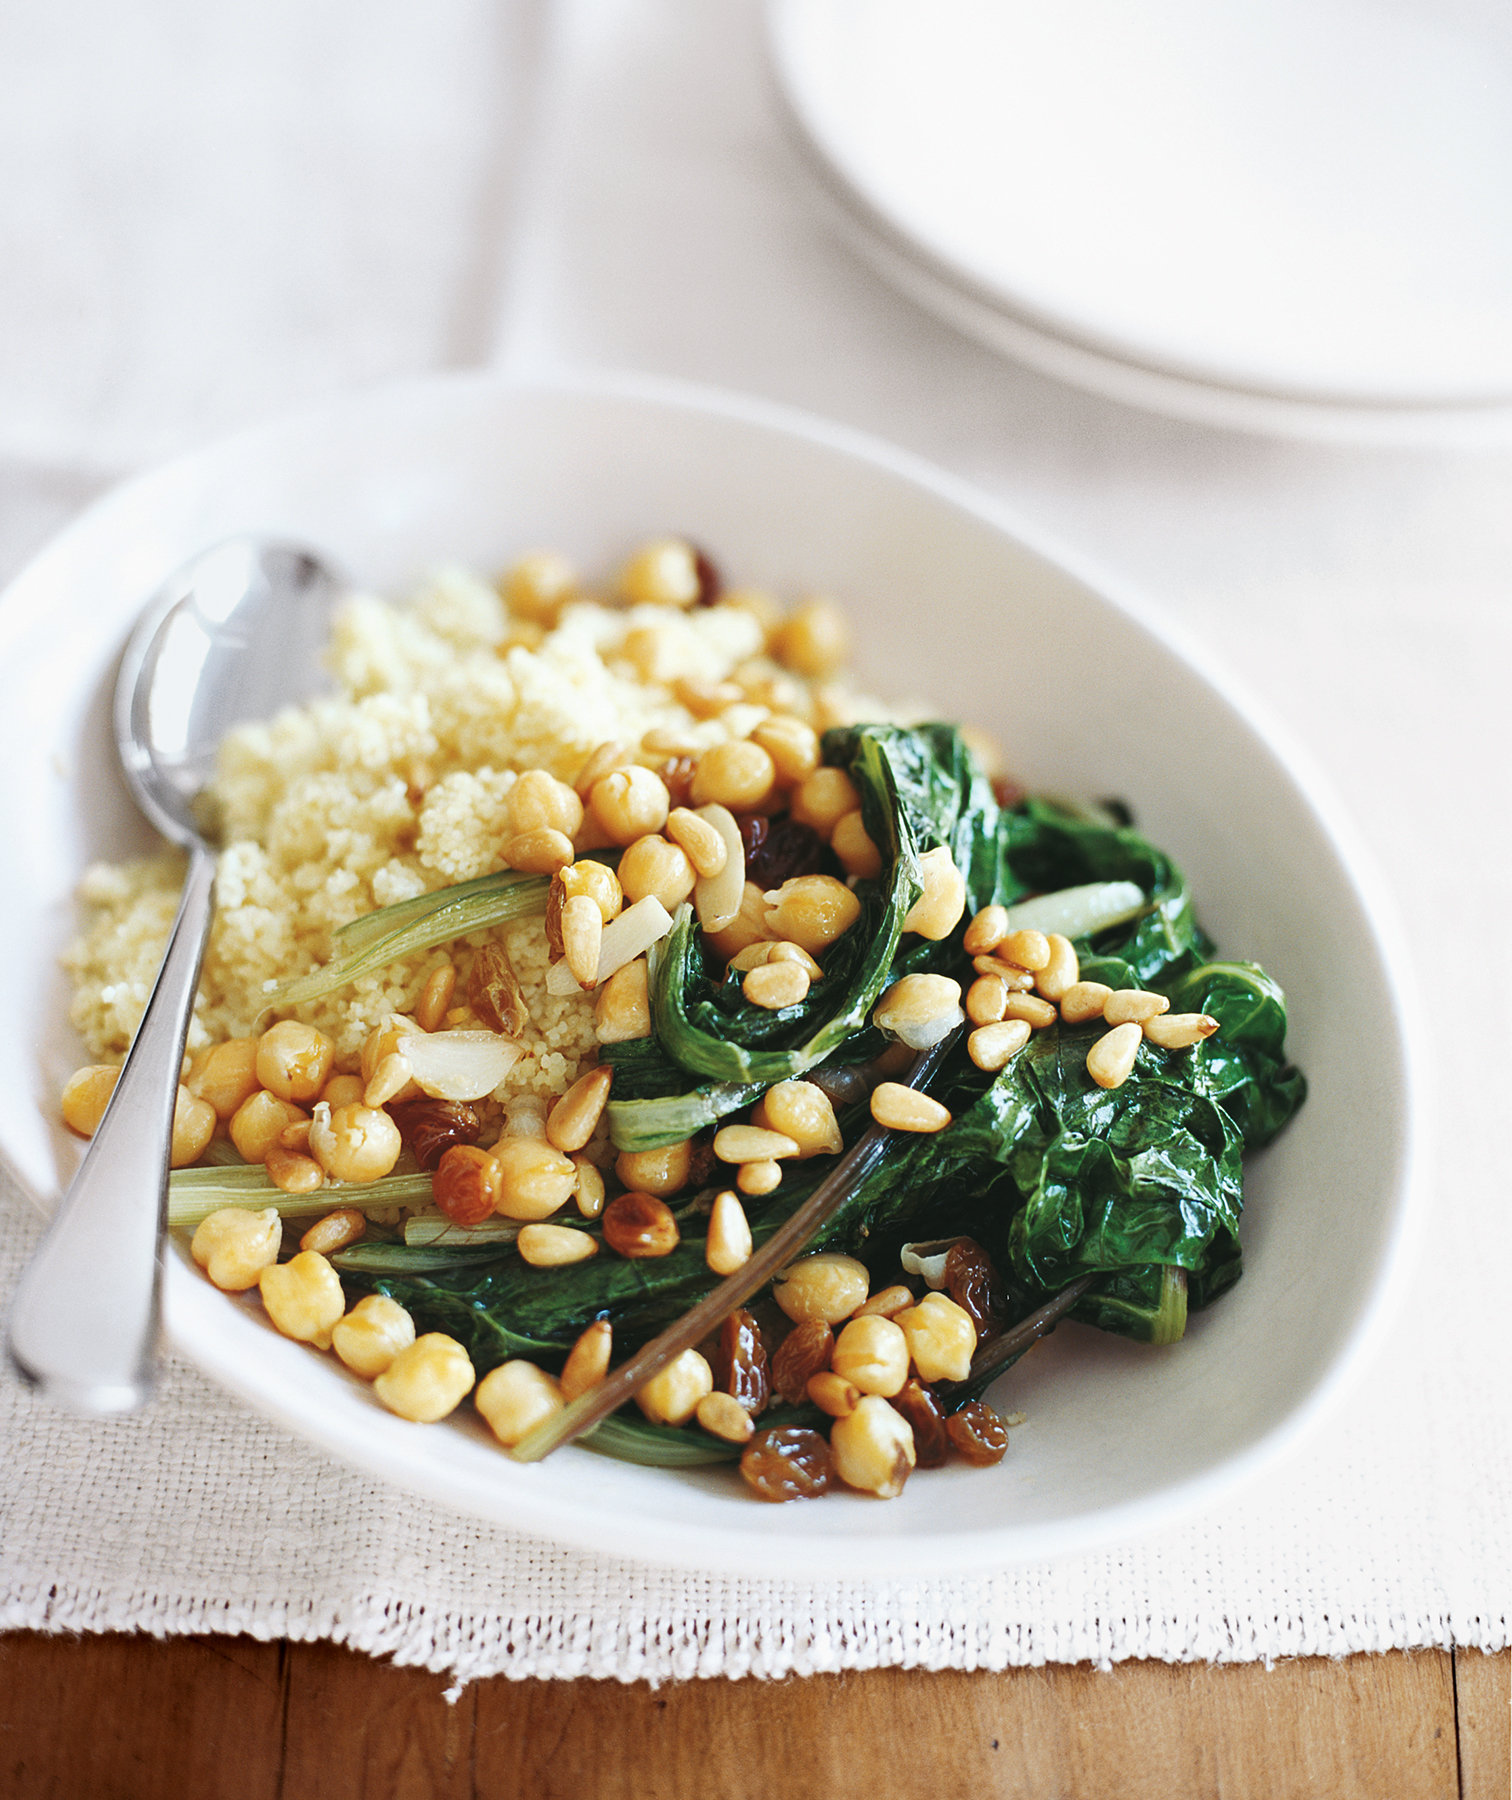 Swiss Chard With Chickpeas and Couscous – Almost Vegan